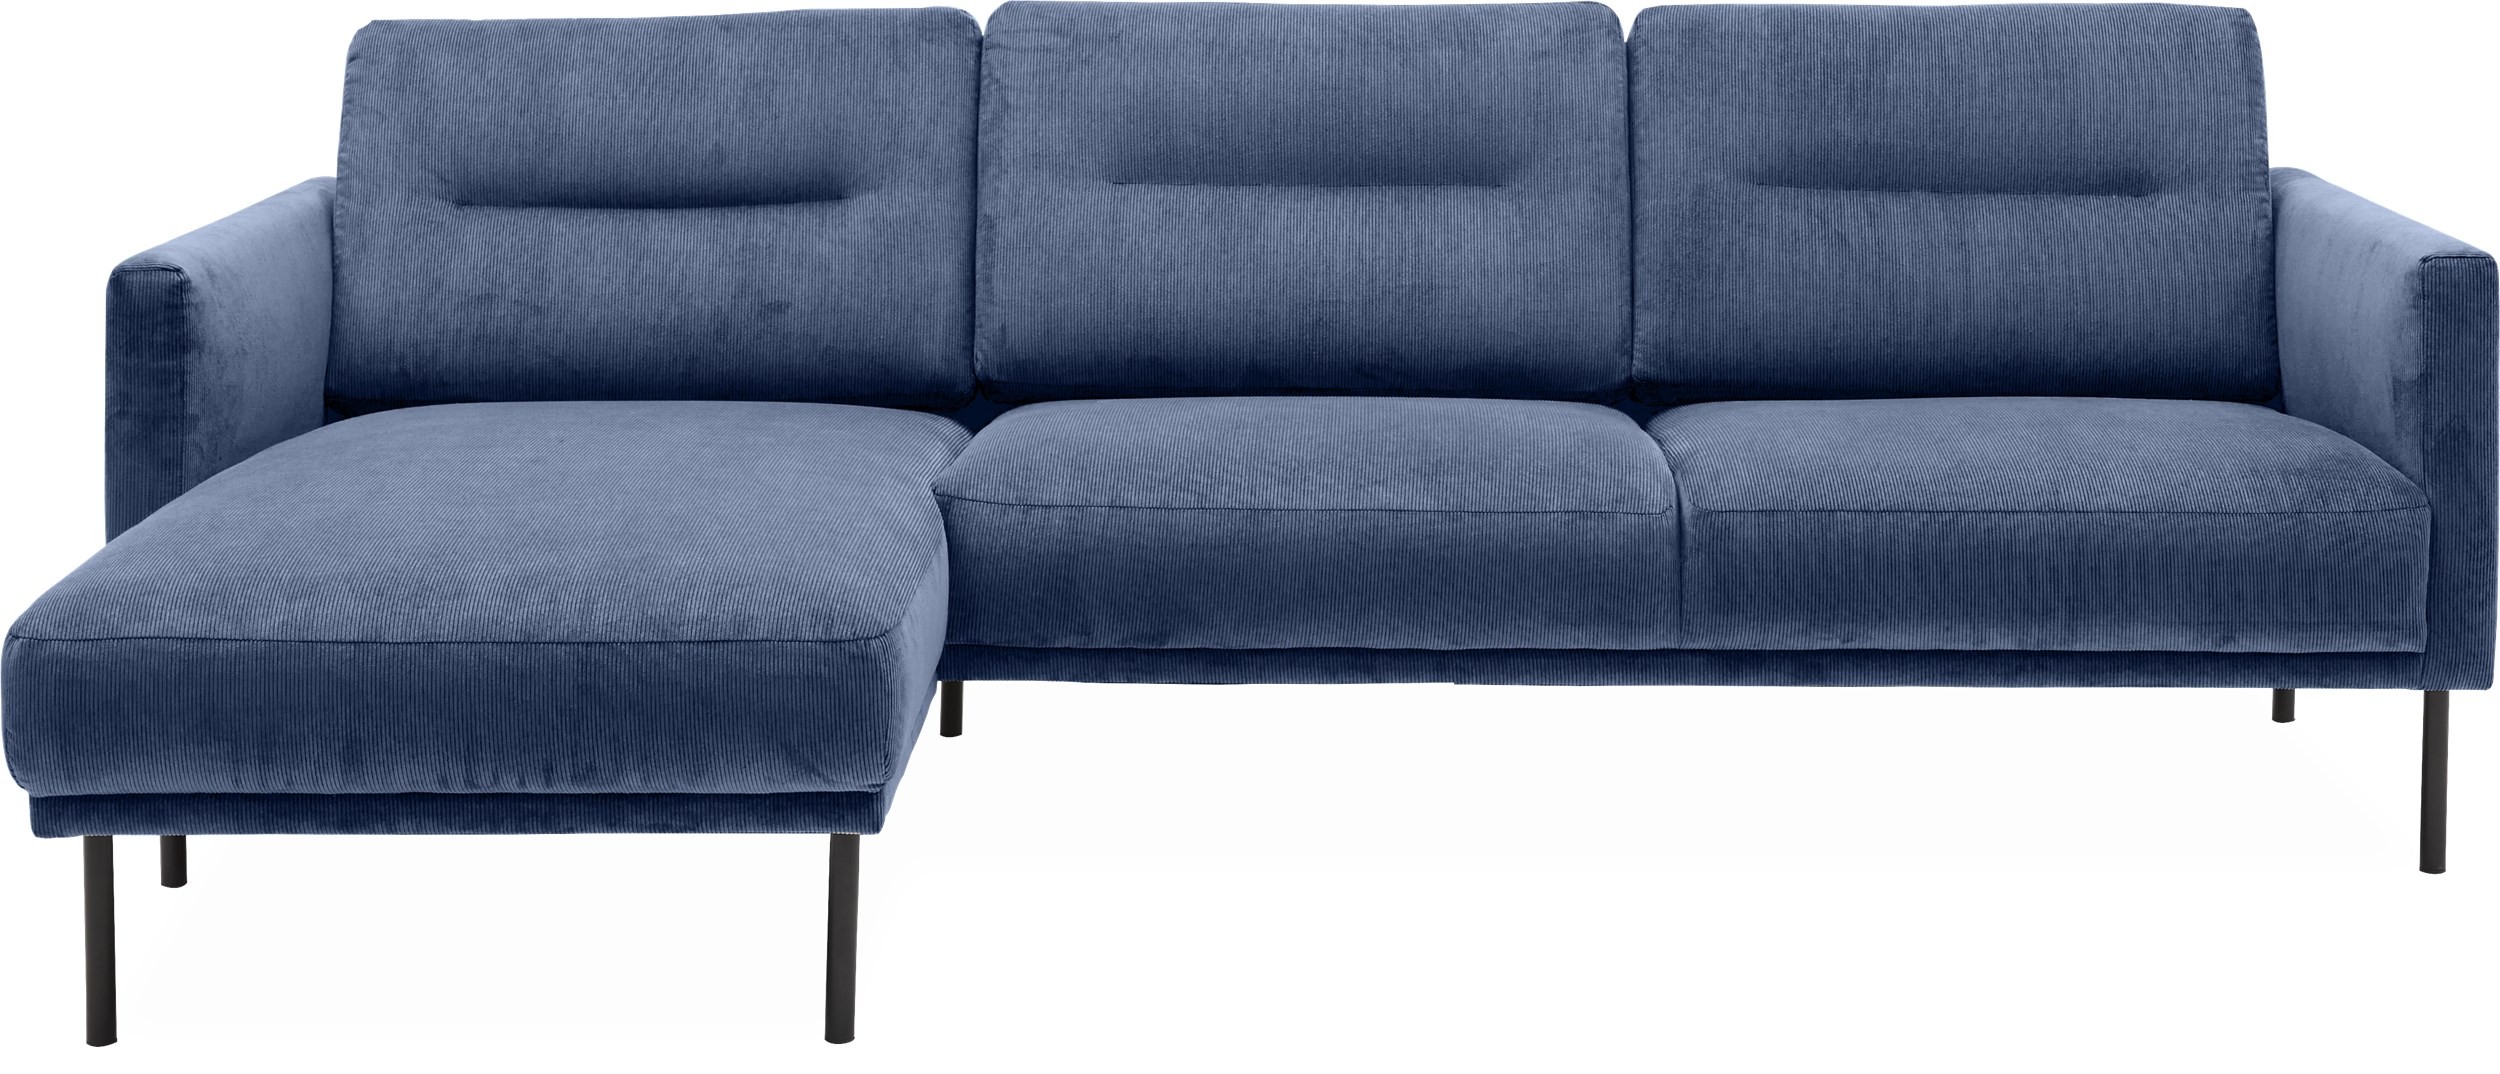 Larvik Sofa med chaiselong - Wave 220 Royal blue stof og ben i sortlakeret metal